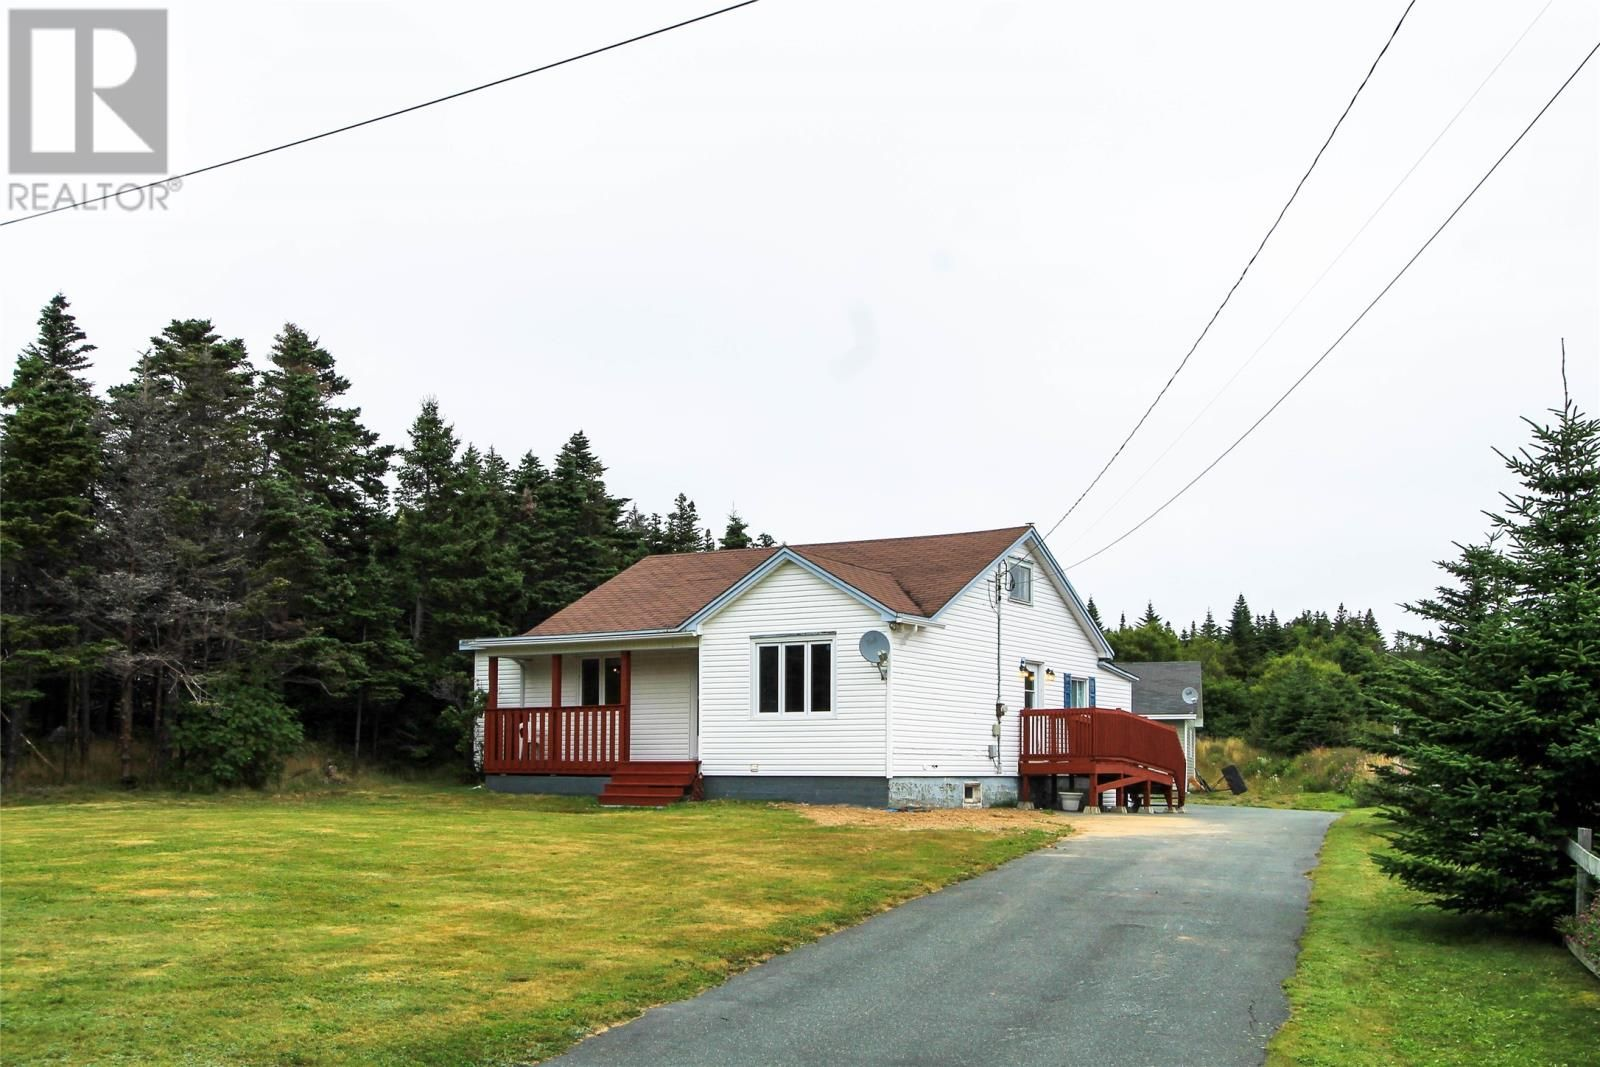 Main Photo: 170 Main Road in Pouch Cove: House for sale : MLS®# 1235852